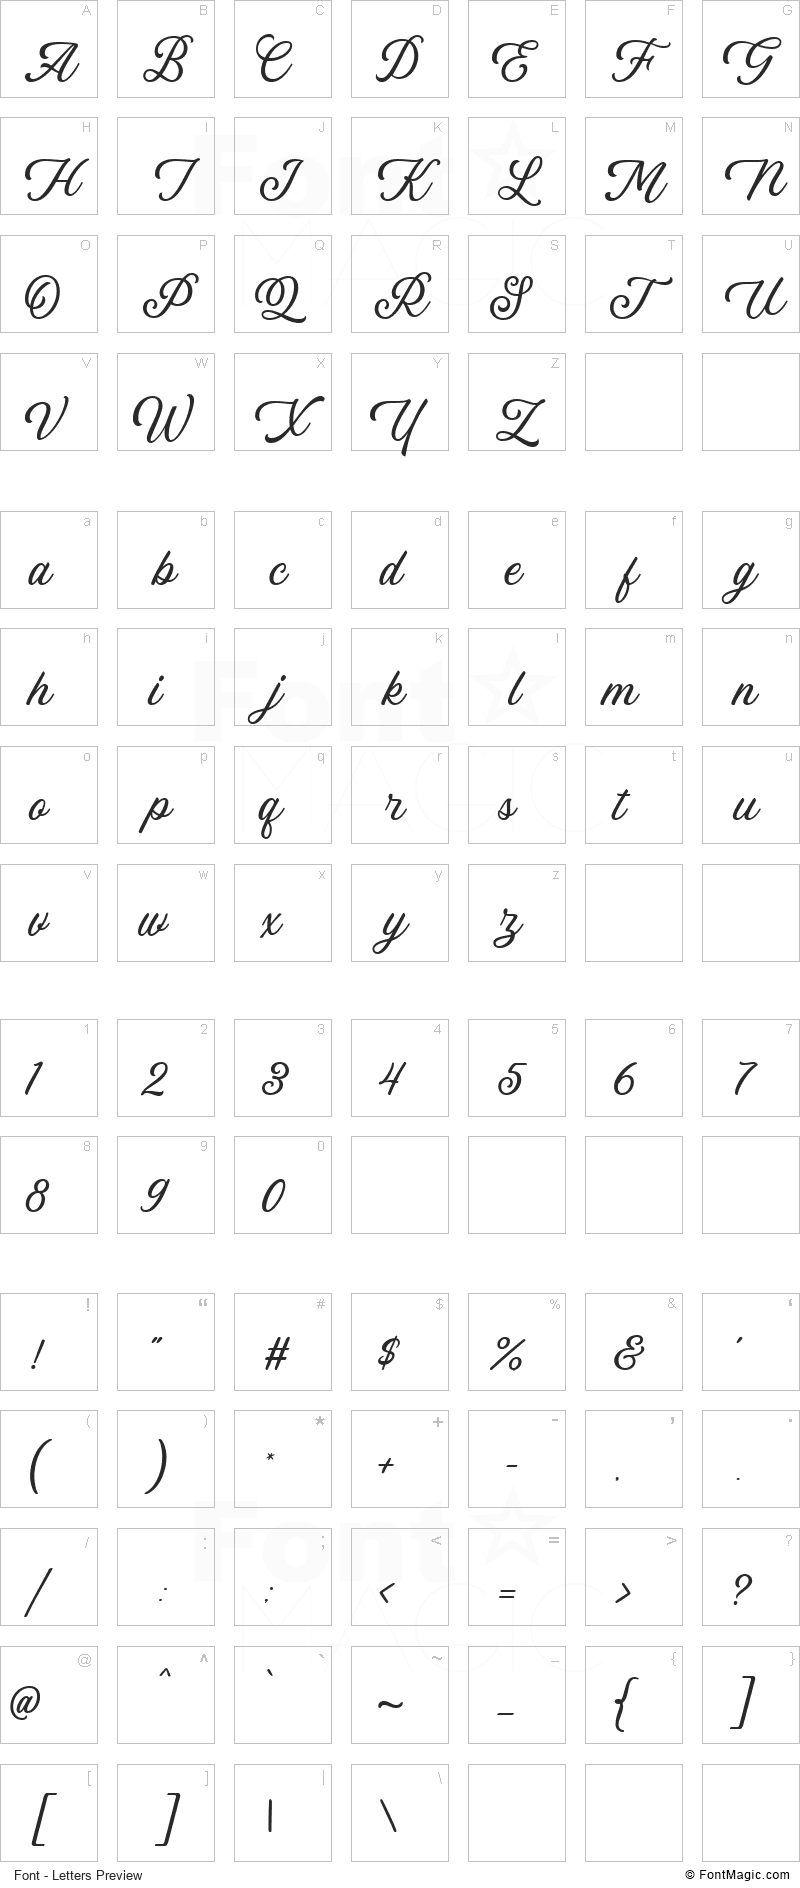 Linkgray Font - All Latters Preview Chart